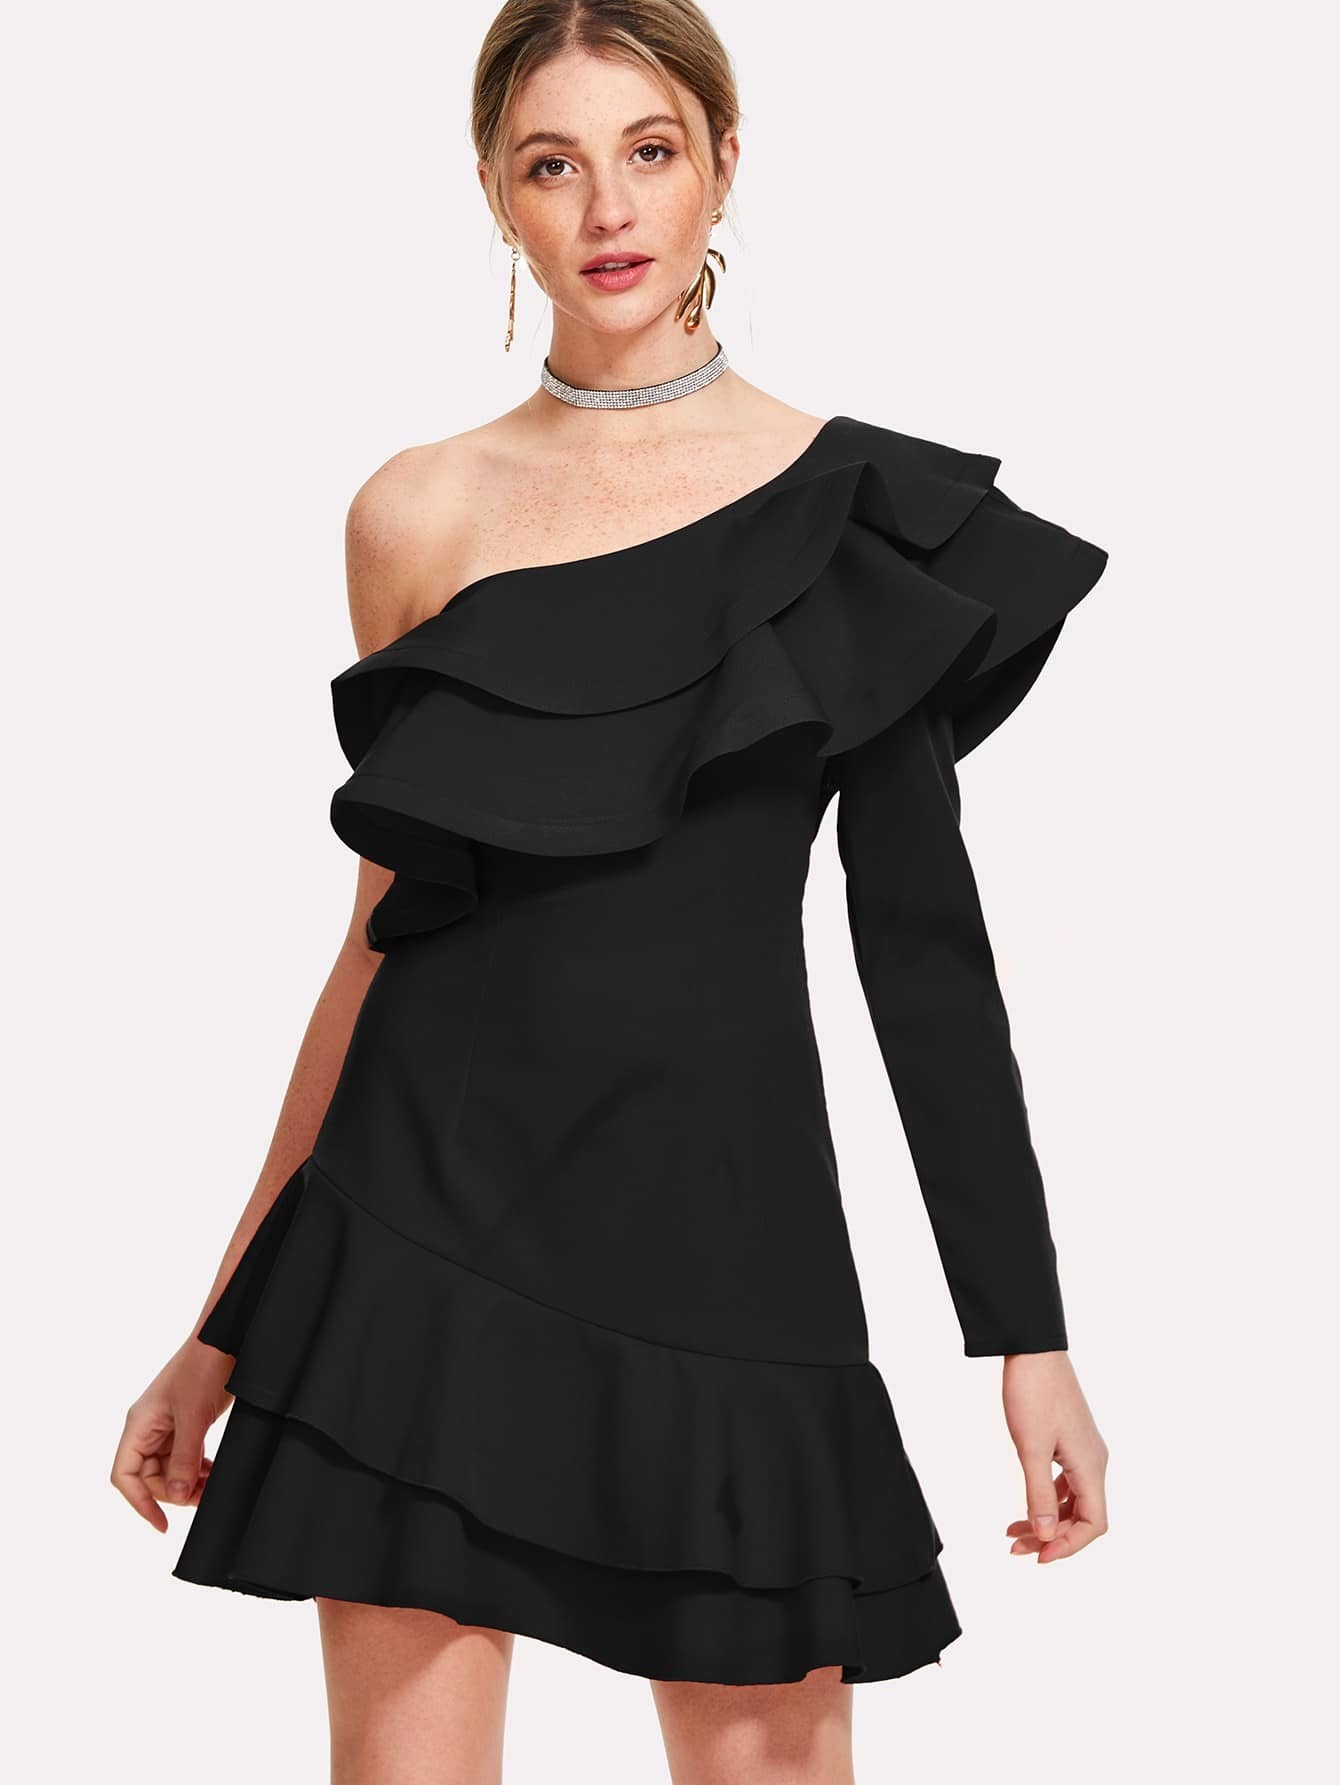 Layered Ruffle Trim One Shoulder Dress 30393 automotive computer board